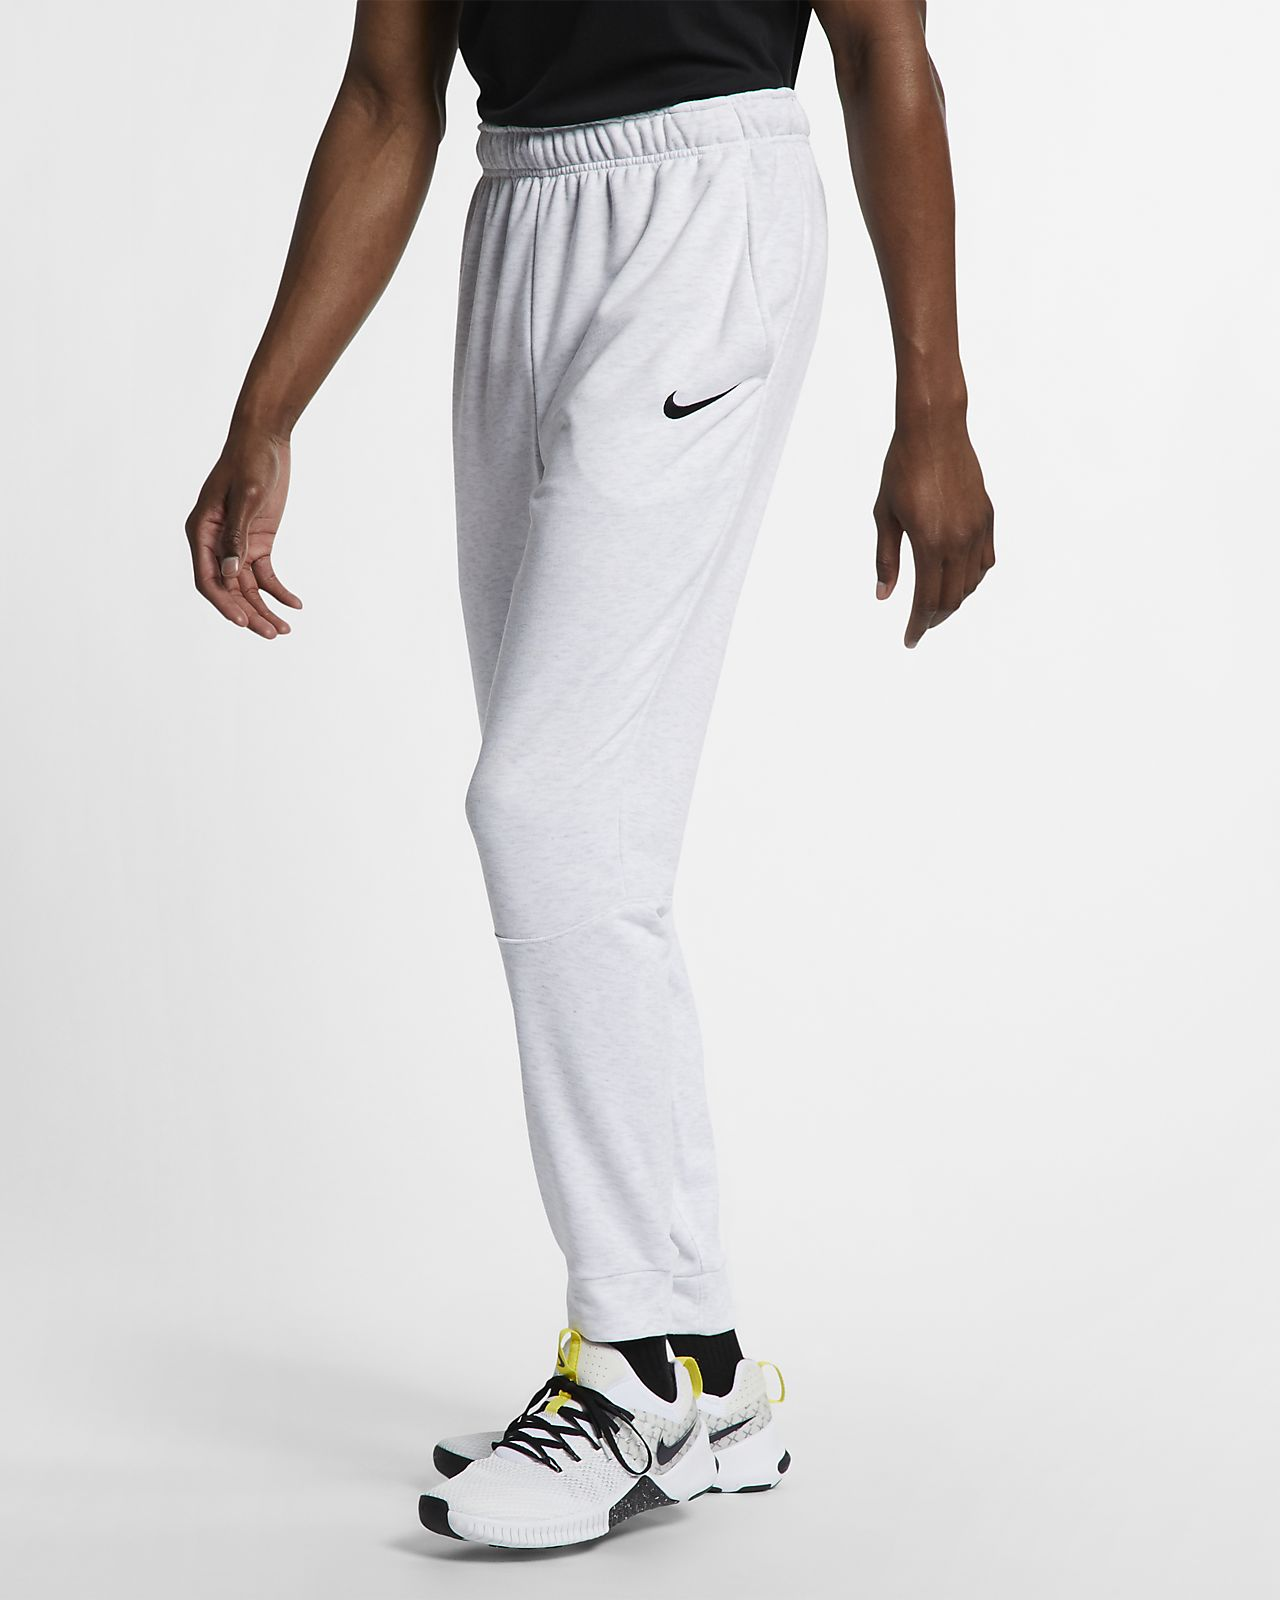 4cf822eb26c5 Nike Dri-FIT Men s Tapered Fleece Training Pants. Nike.com